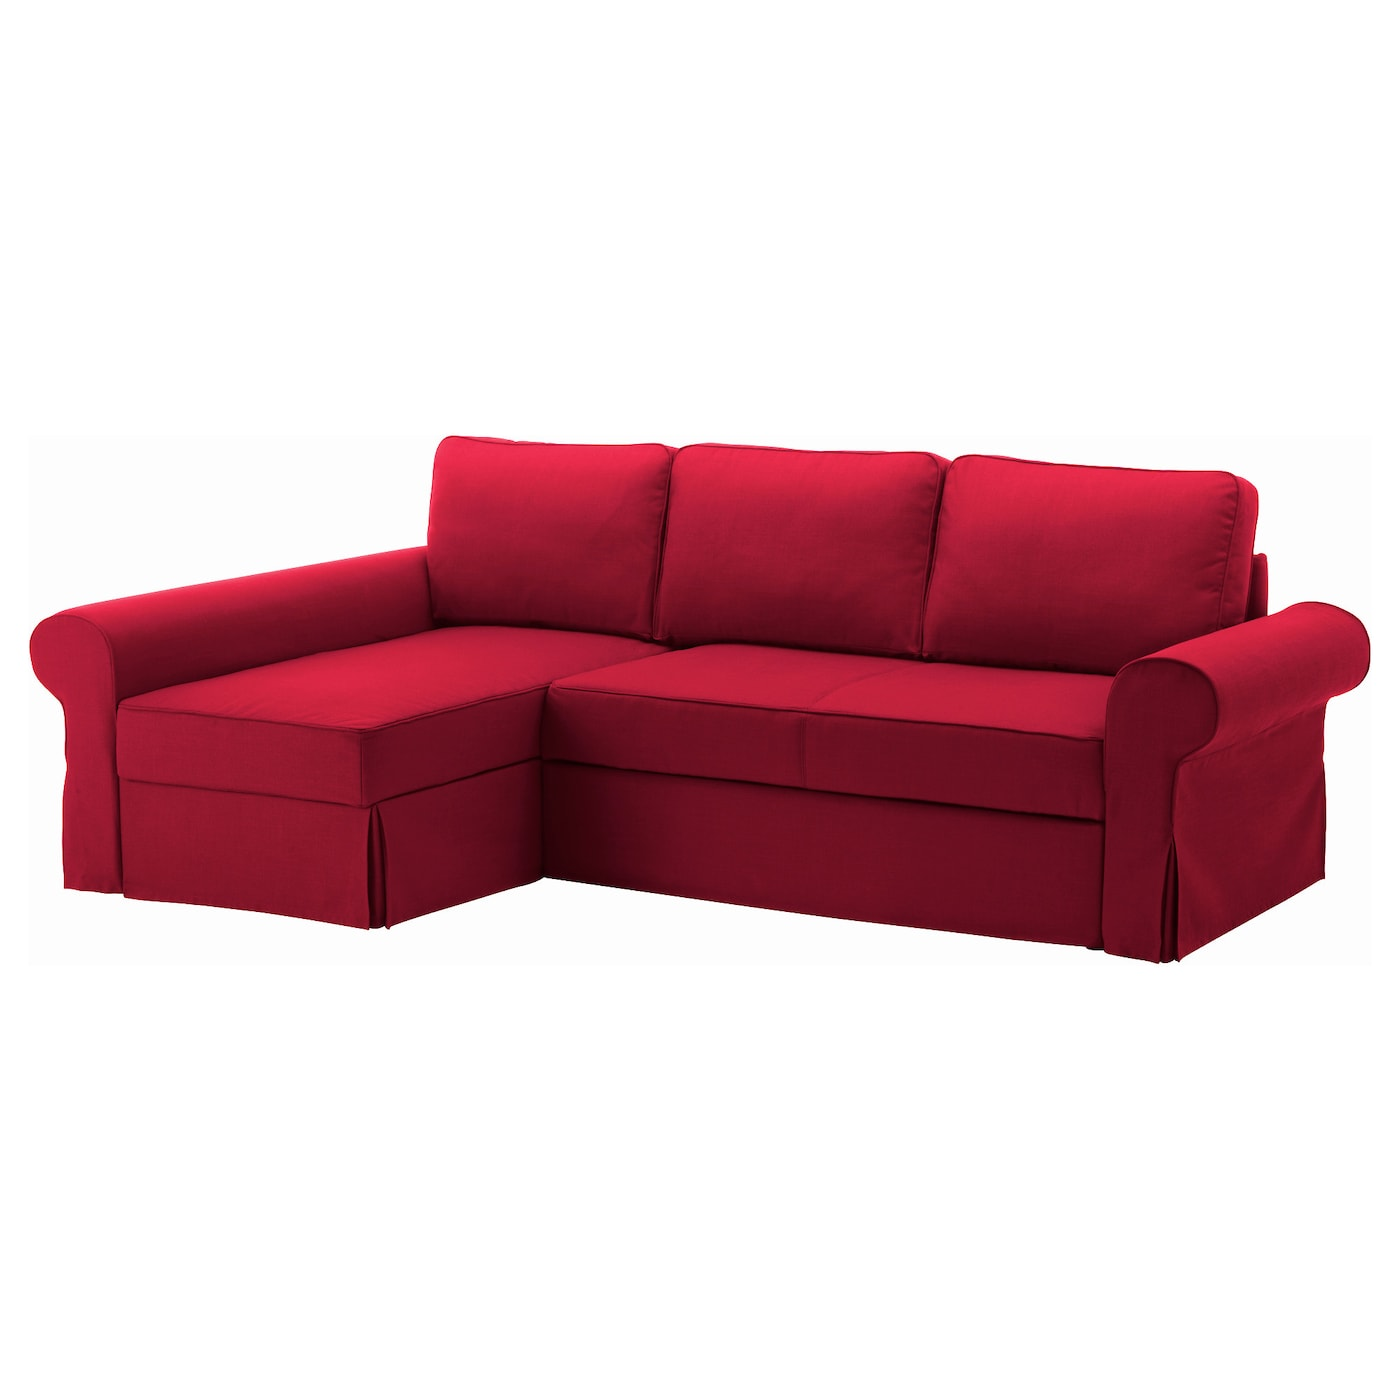 Backabro sofa bed with chaise longue nordvalla red ikea for Chaise bed sofa